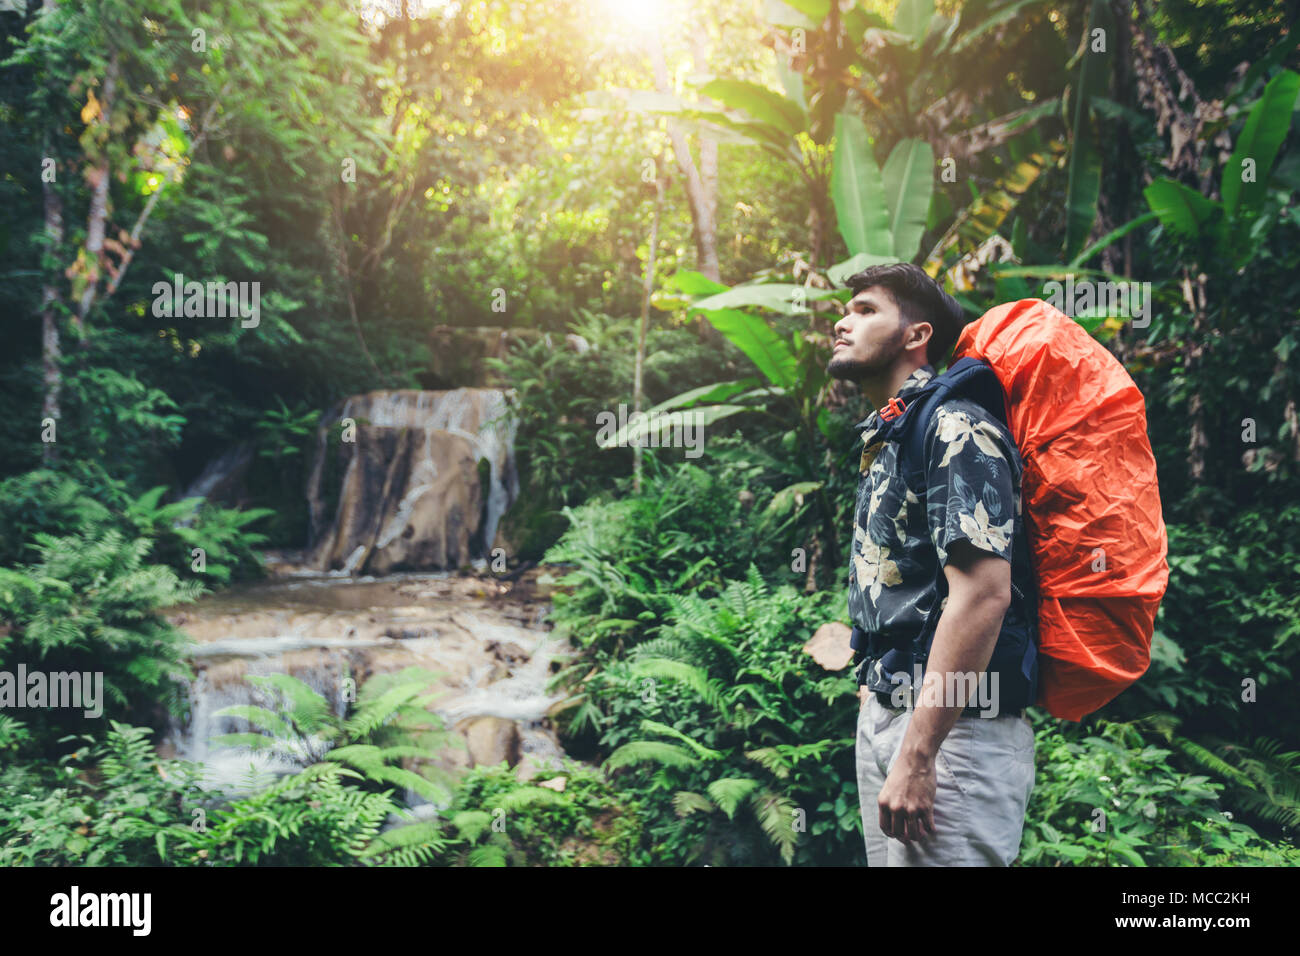 Person standing in waterfall, Inspired happy traveler enjoying nature, adventure concept - Stock Image